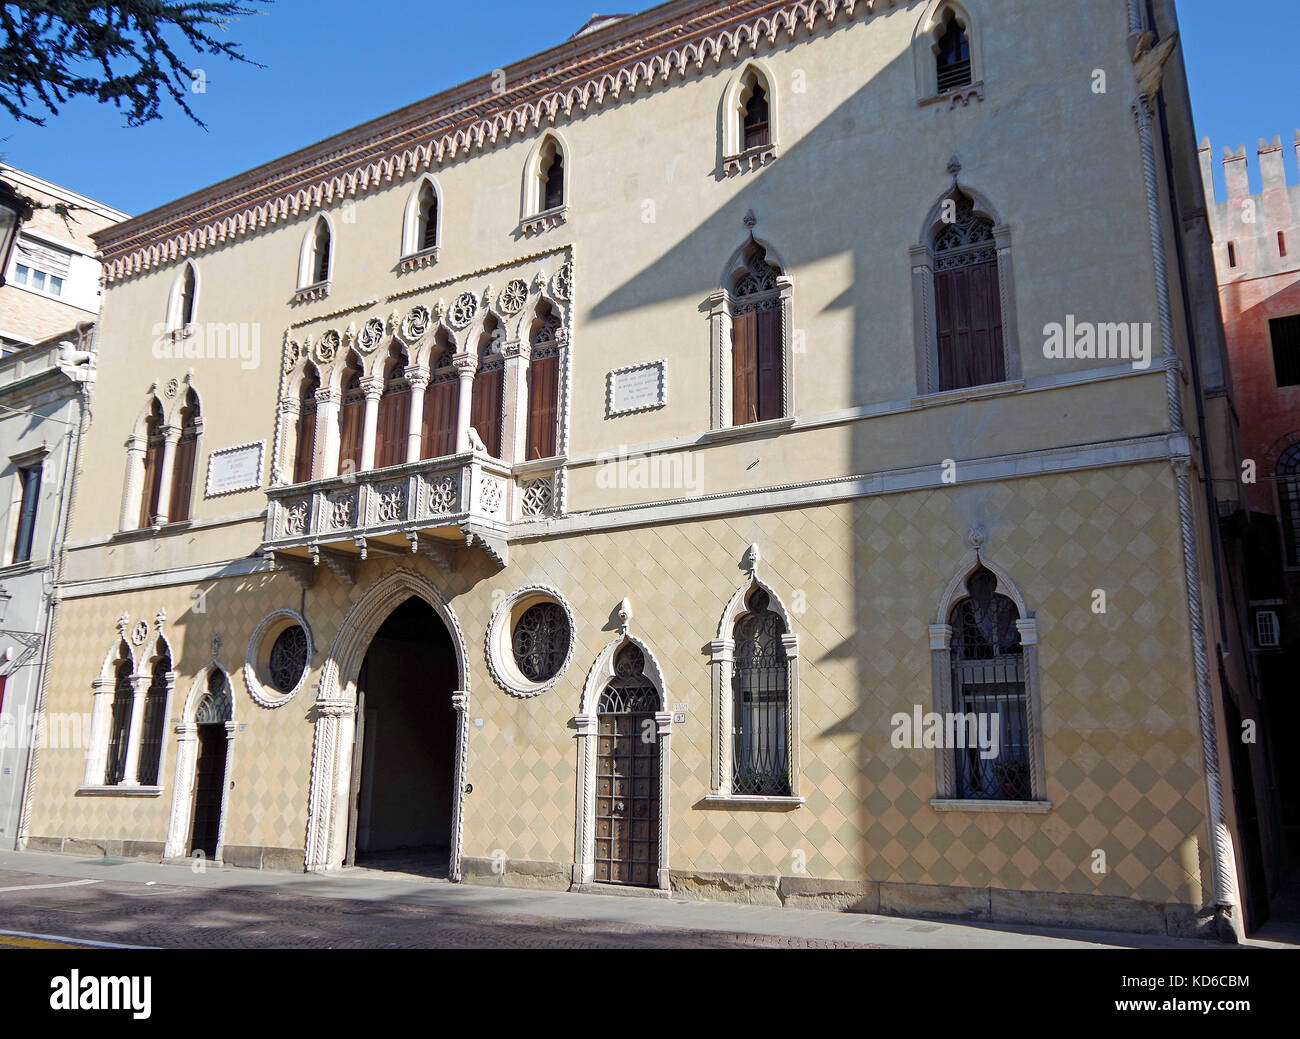 Palazzo Romanin Jacur, in Padua, Italy, a 14th century Venetian Gothic palace, - Stock Image